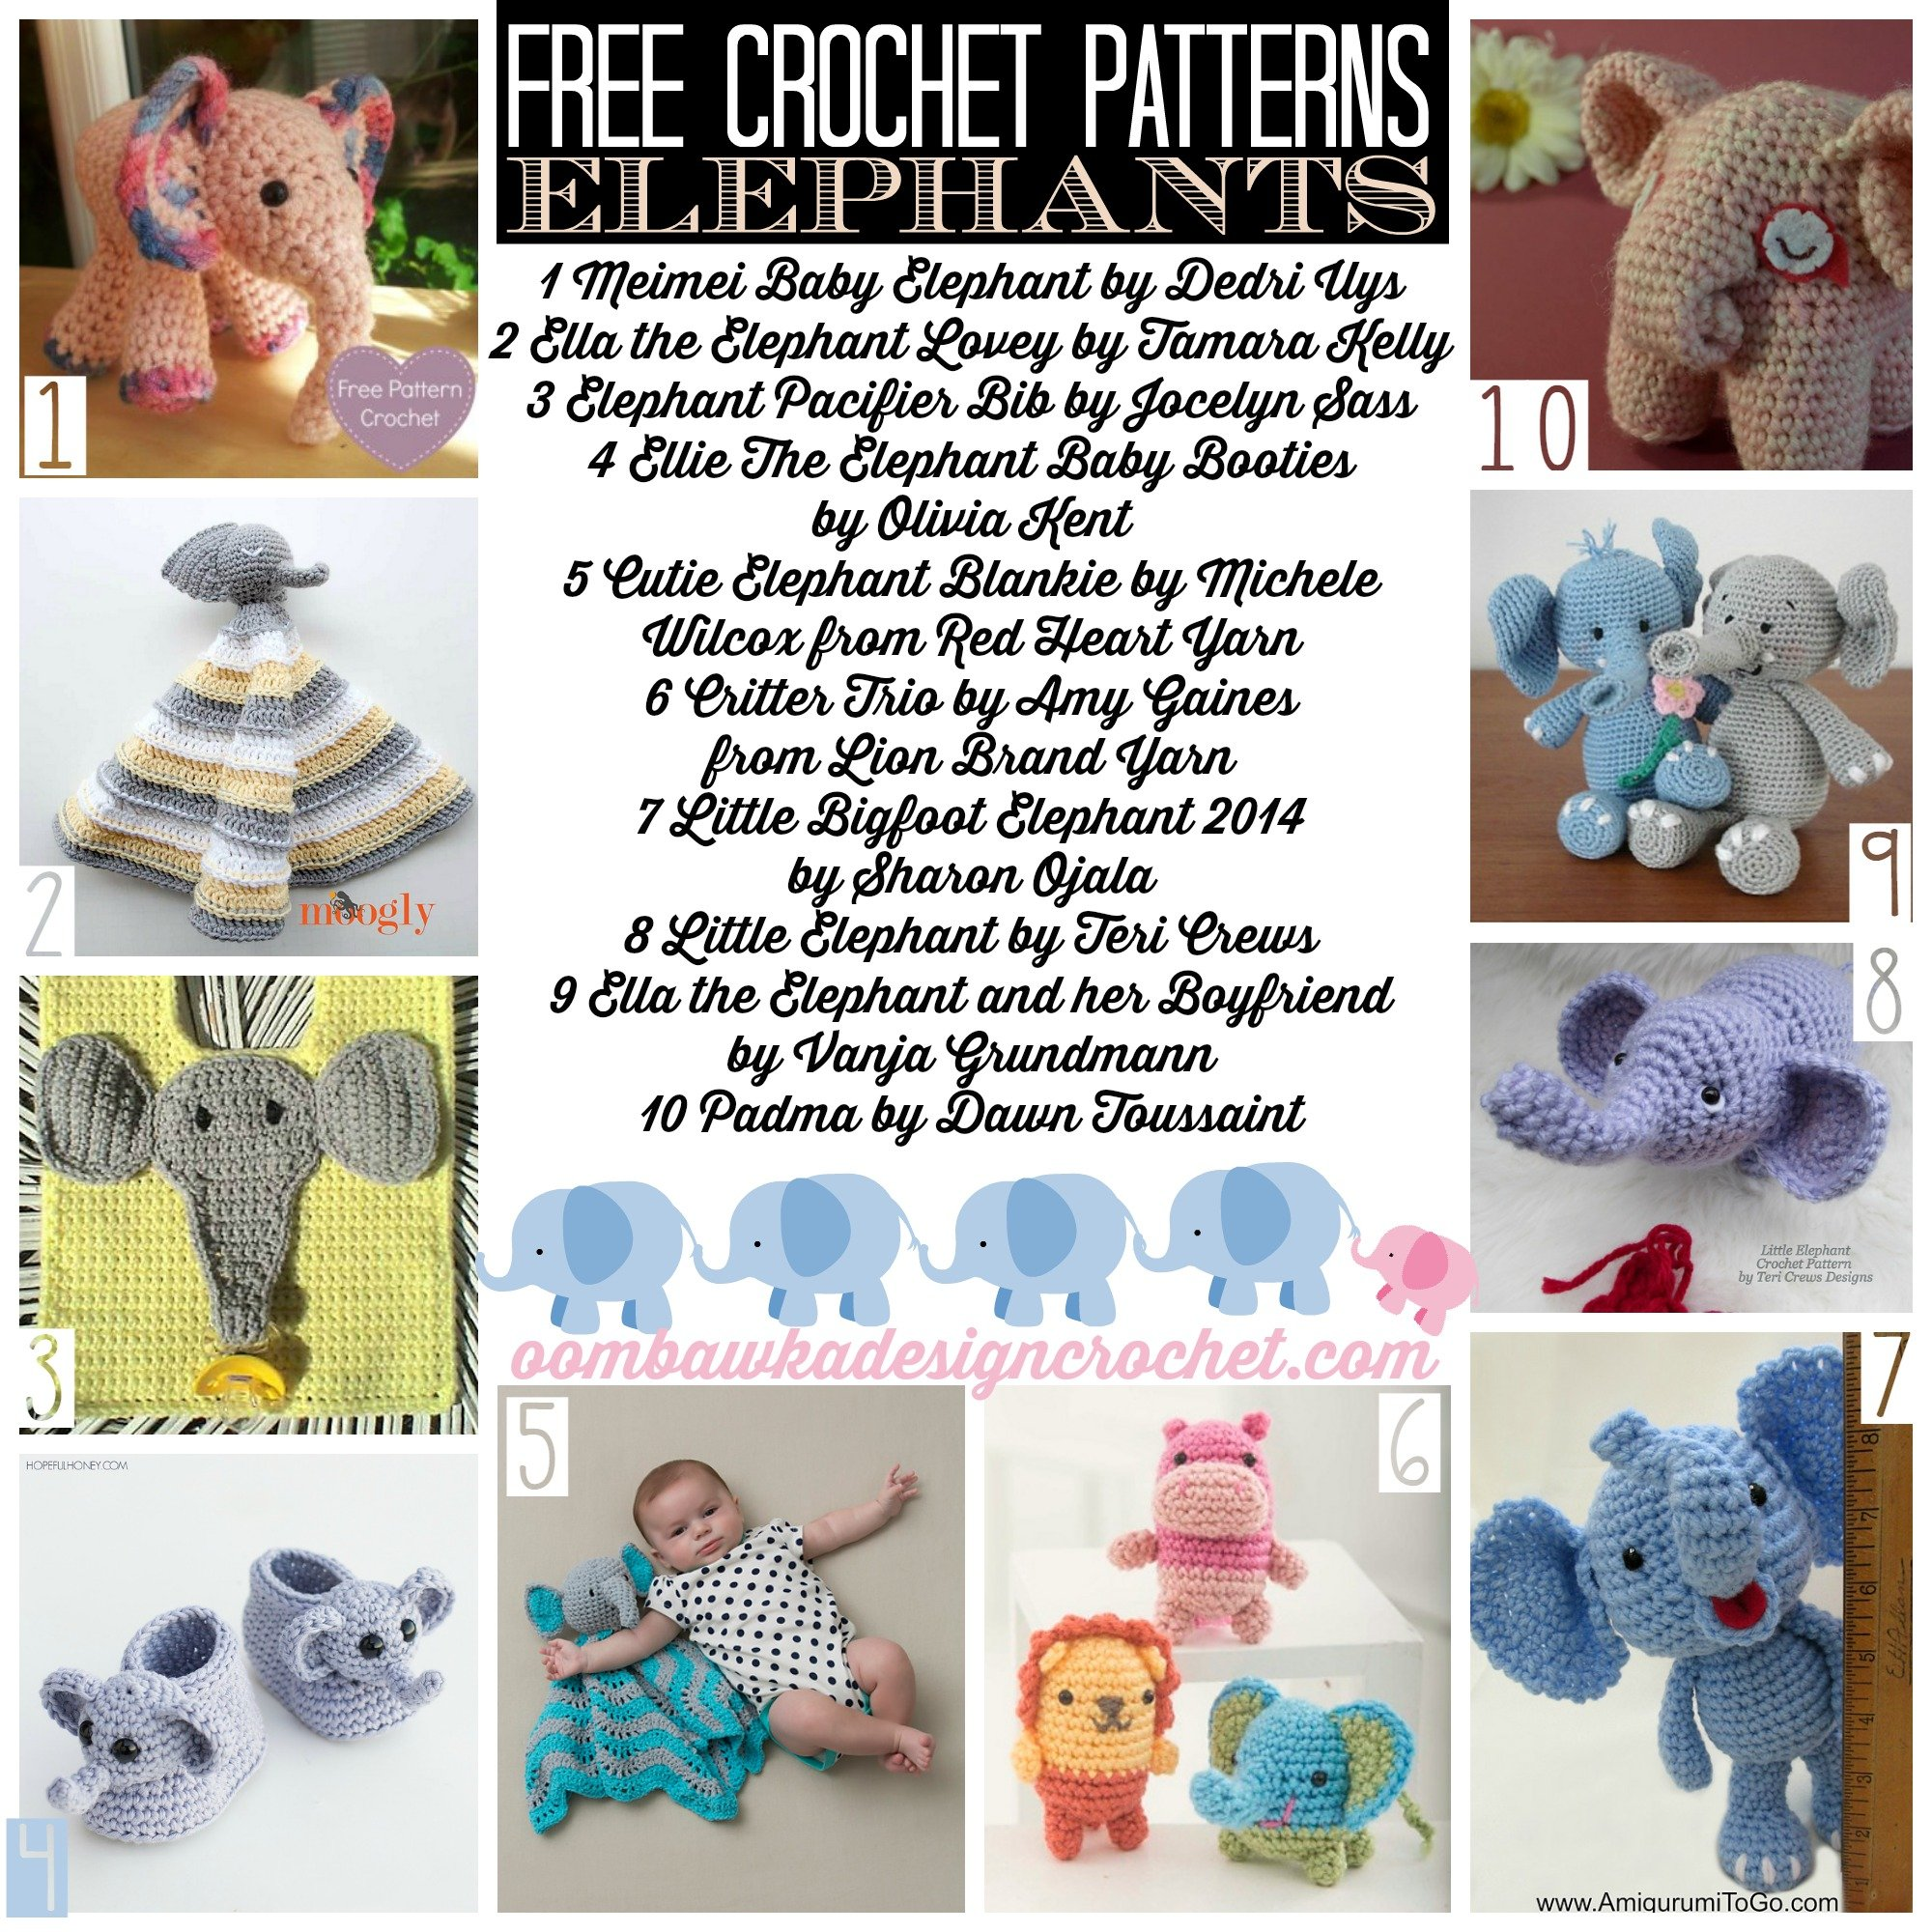 Ella The Elephant Free Crochet Pattern : A Score of Free Crochet Elephant Patterns Oombawka ...